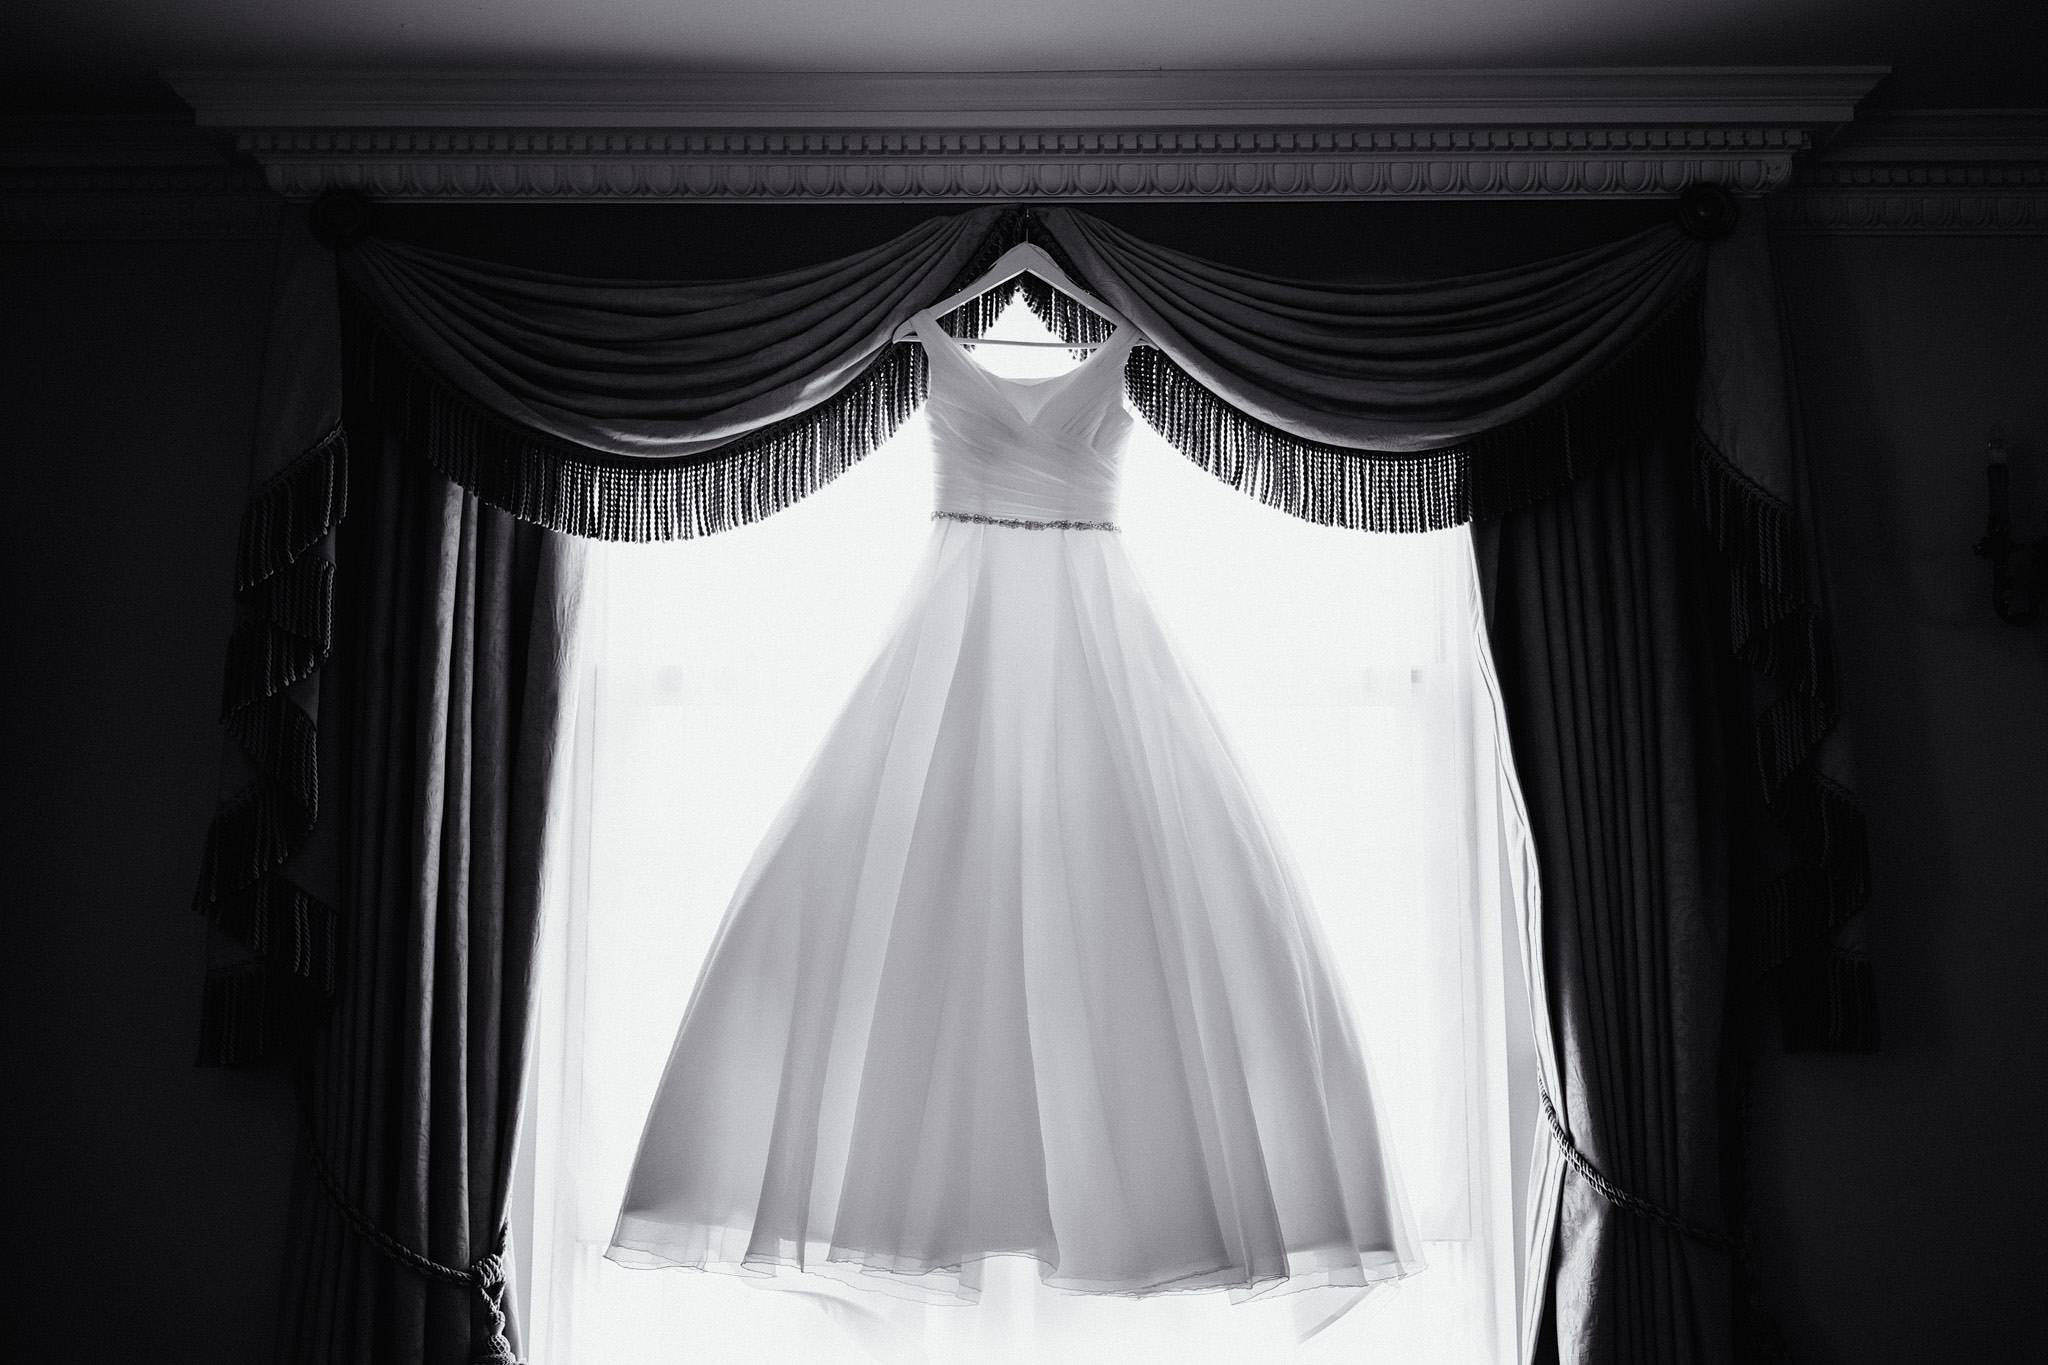 a black and white images of a wedding dress